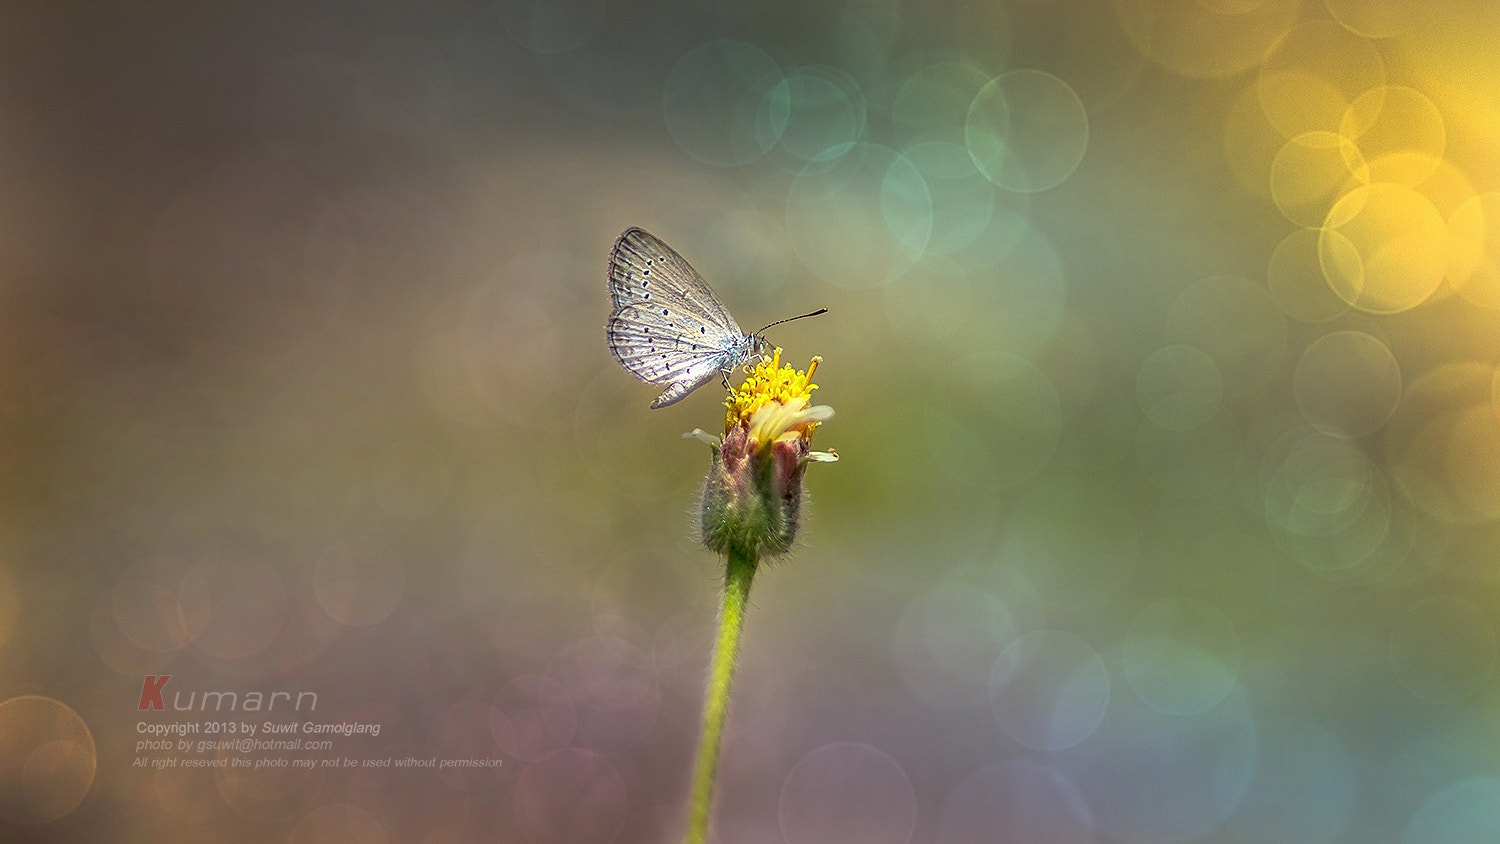 Photograph Buitterfly background by Suwit Gamolglang on 500px